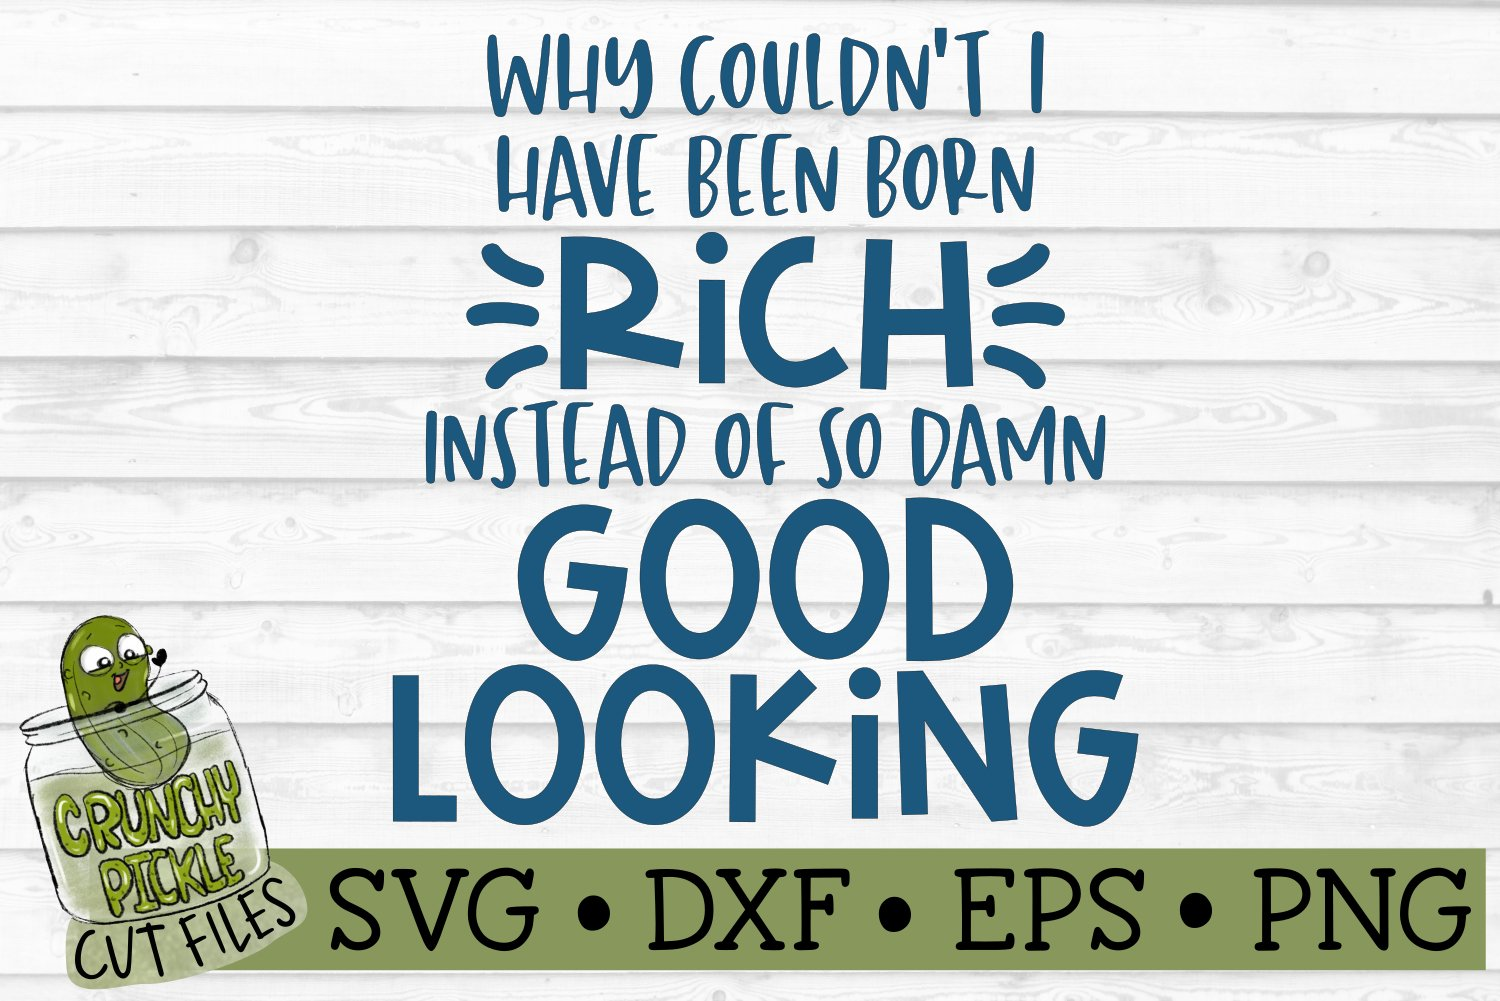 Born Rich Instead of so Damn Good Looking Funny SVG Cut File example image 2